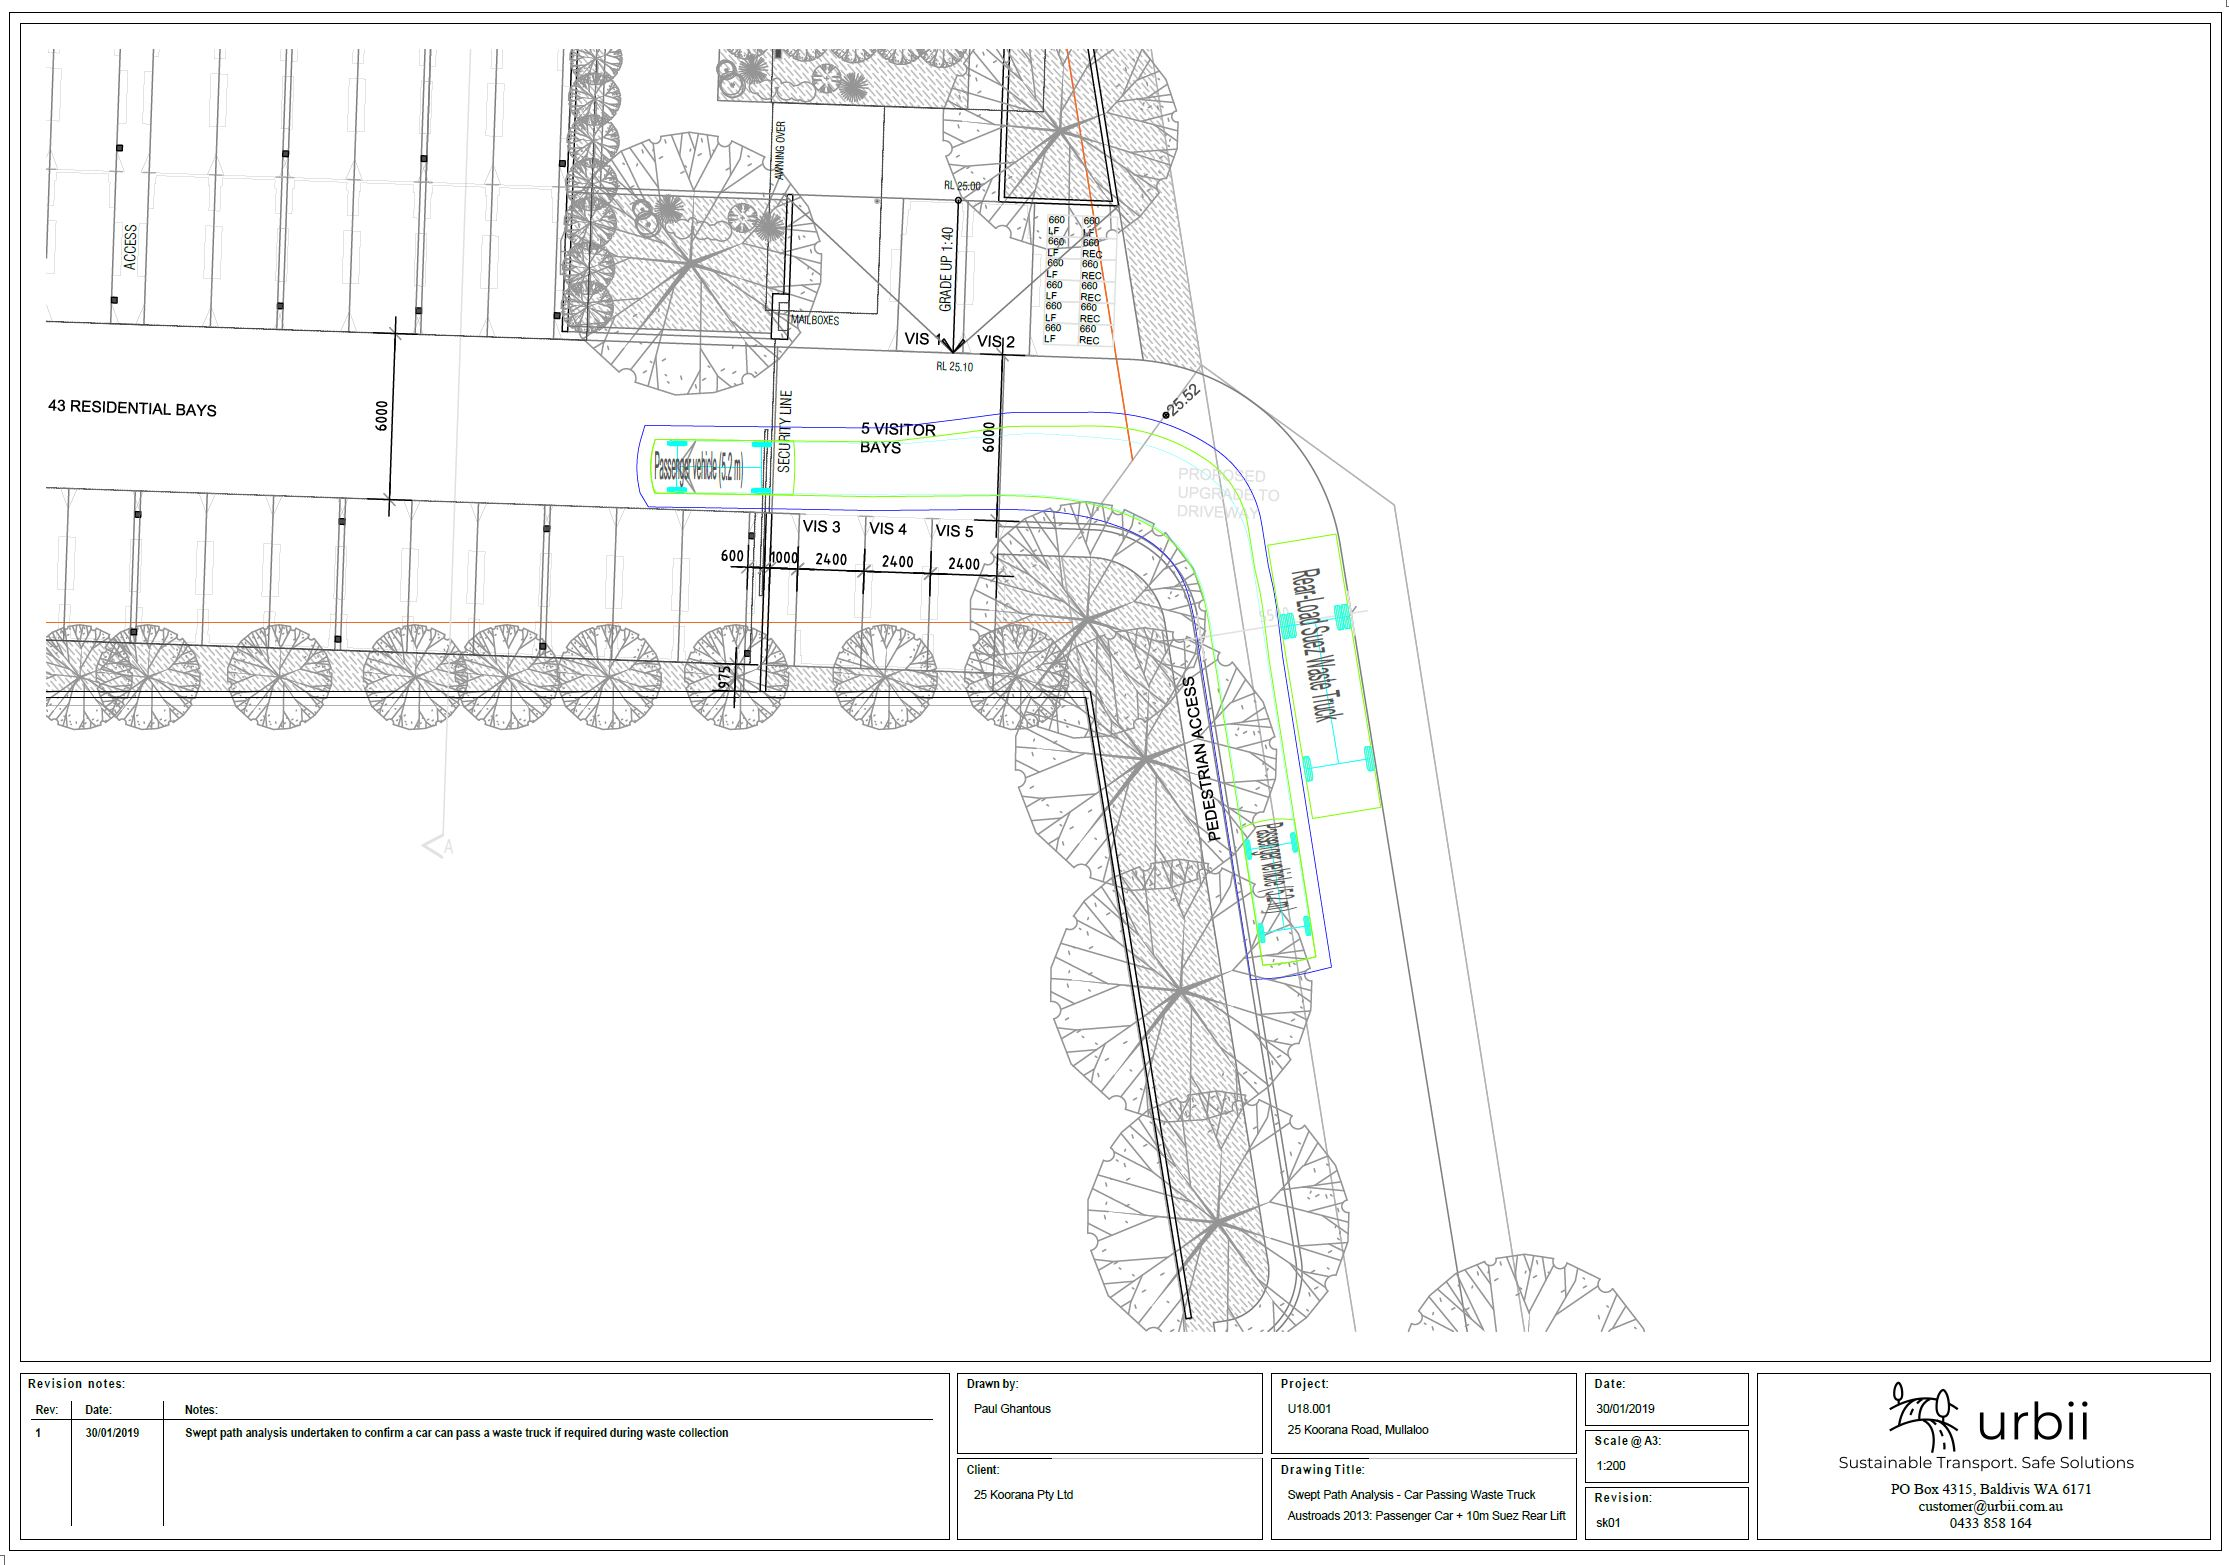 Example of swept path analysis for the project